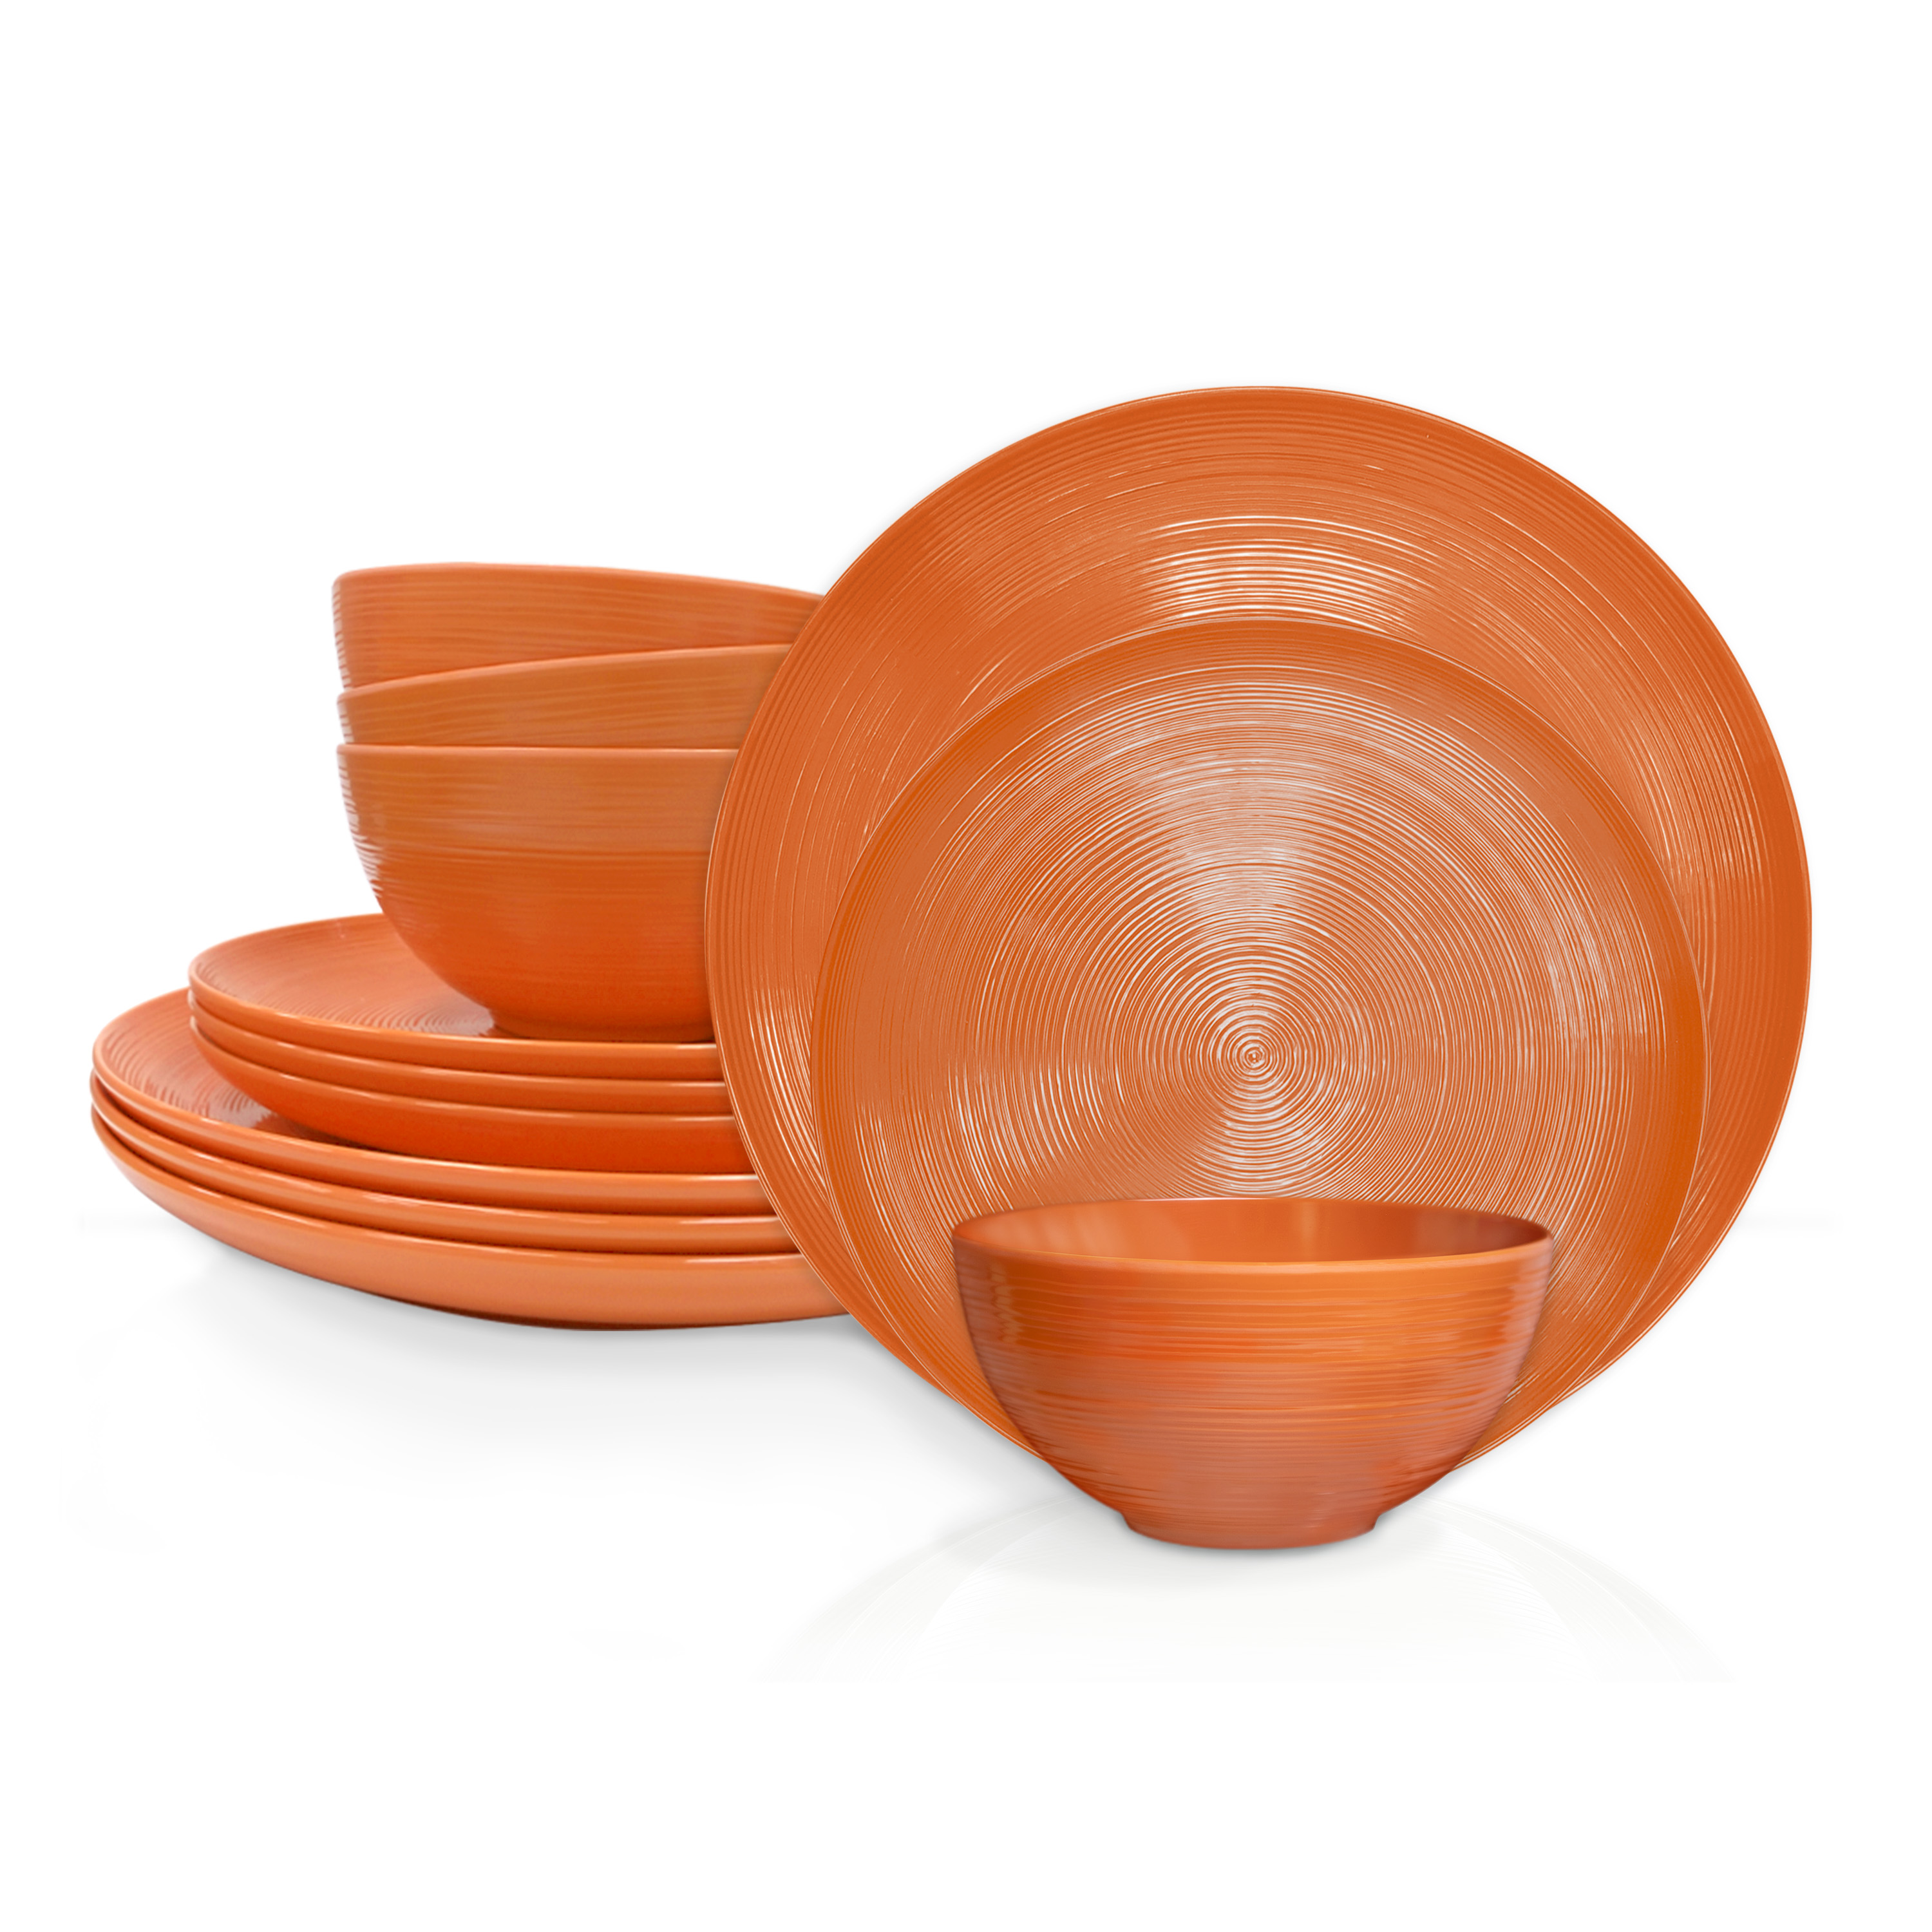 American Conventional Plate & Bowl Sets, Orange, 12-piece set slideshow image 2